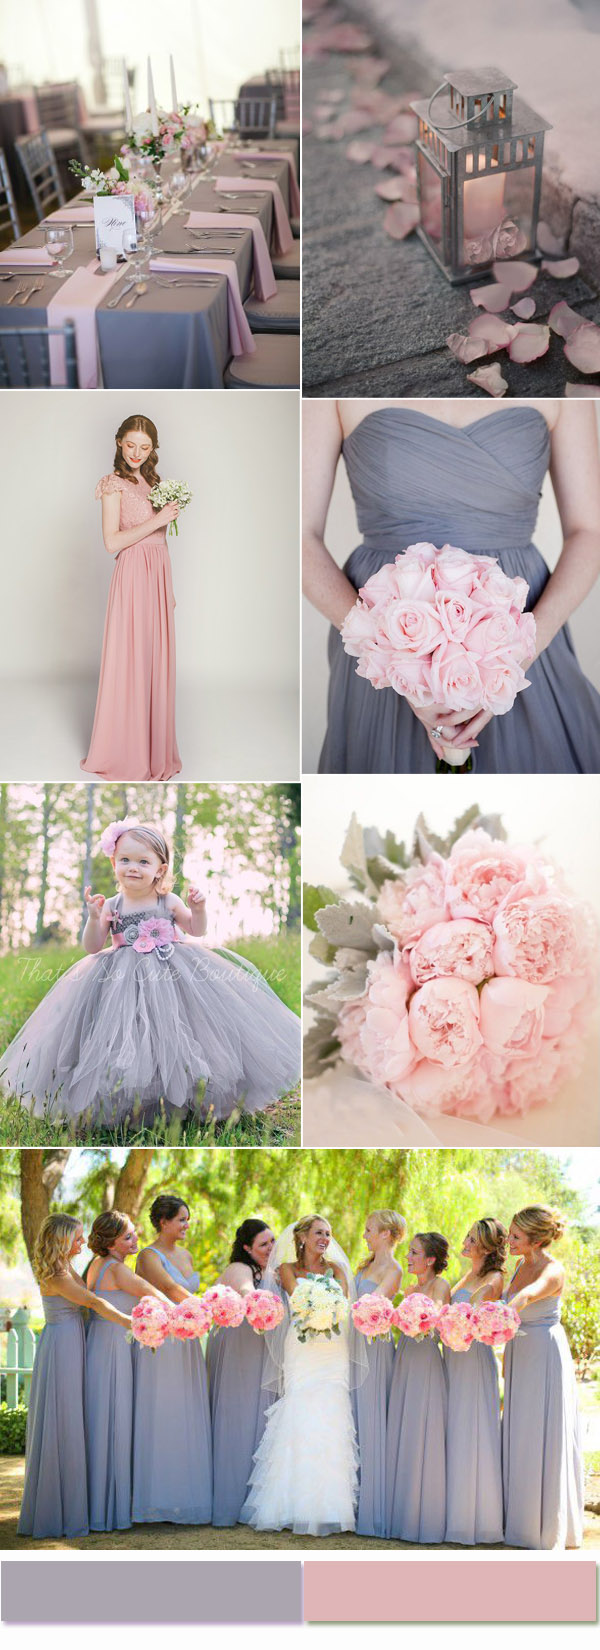 2017 Most Trendy and Hot Color Combinations Based on the Wedding Report  Stylish Wedd Blog